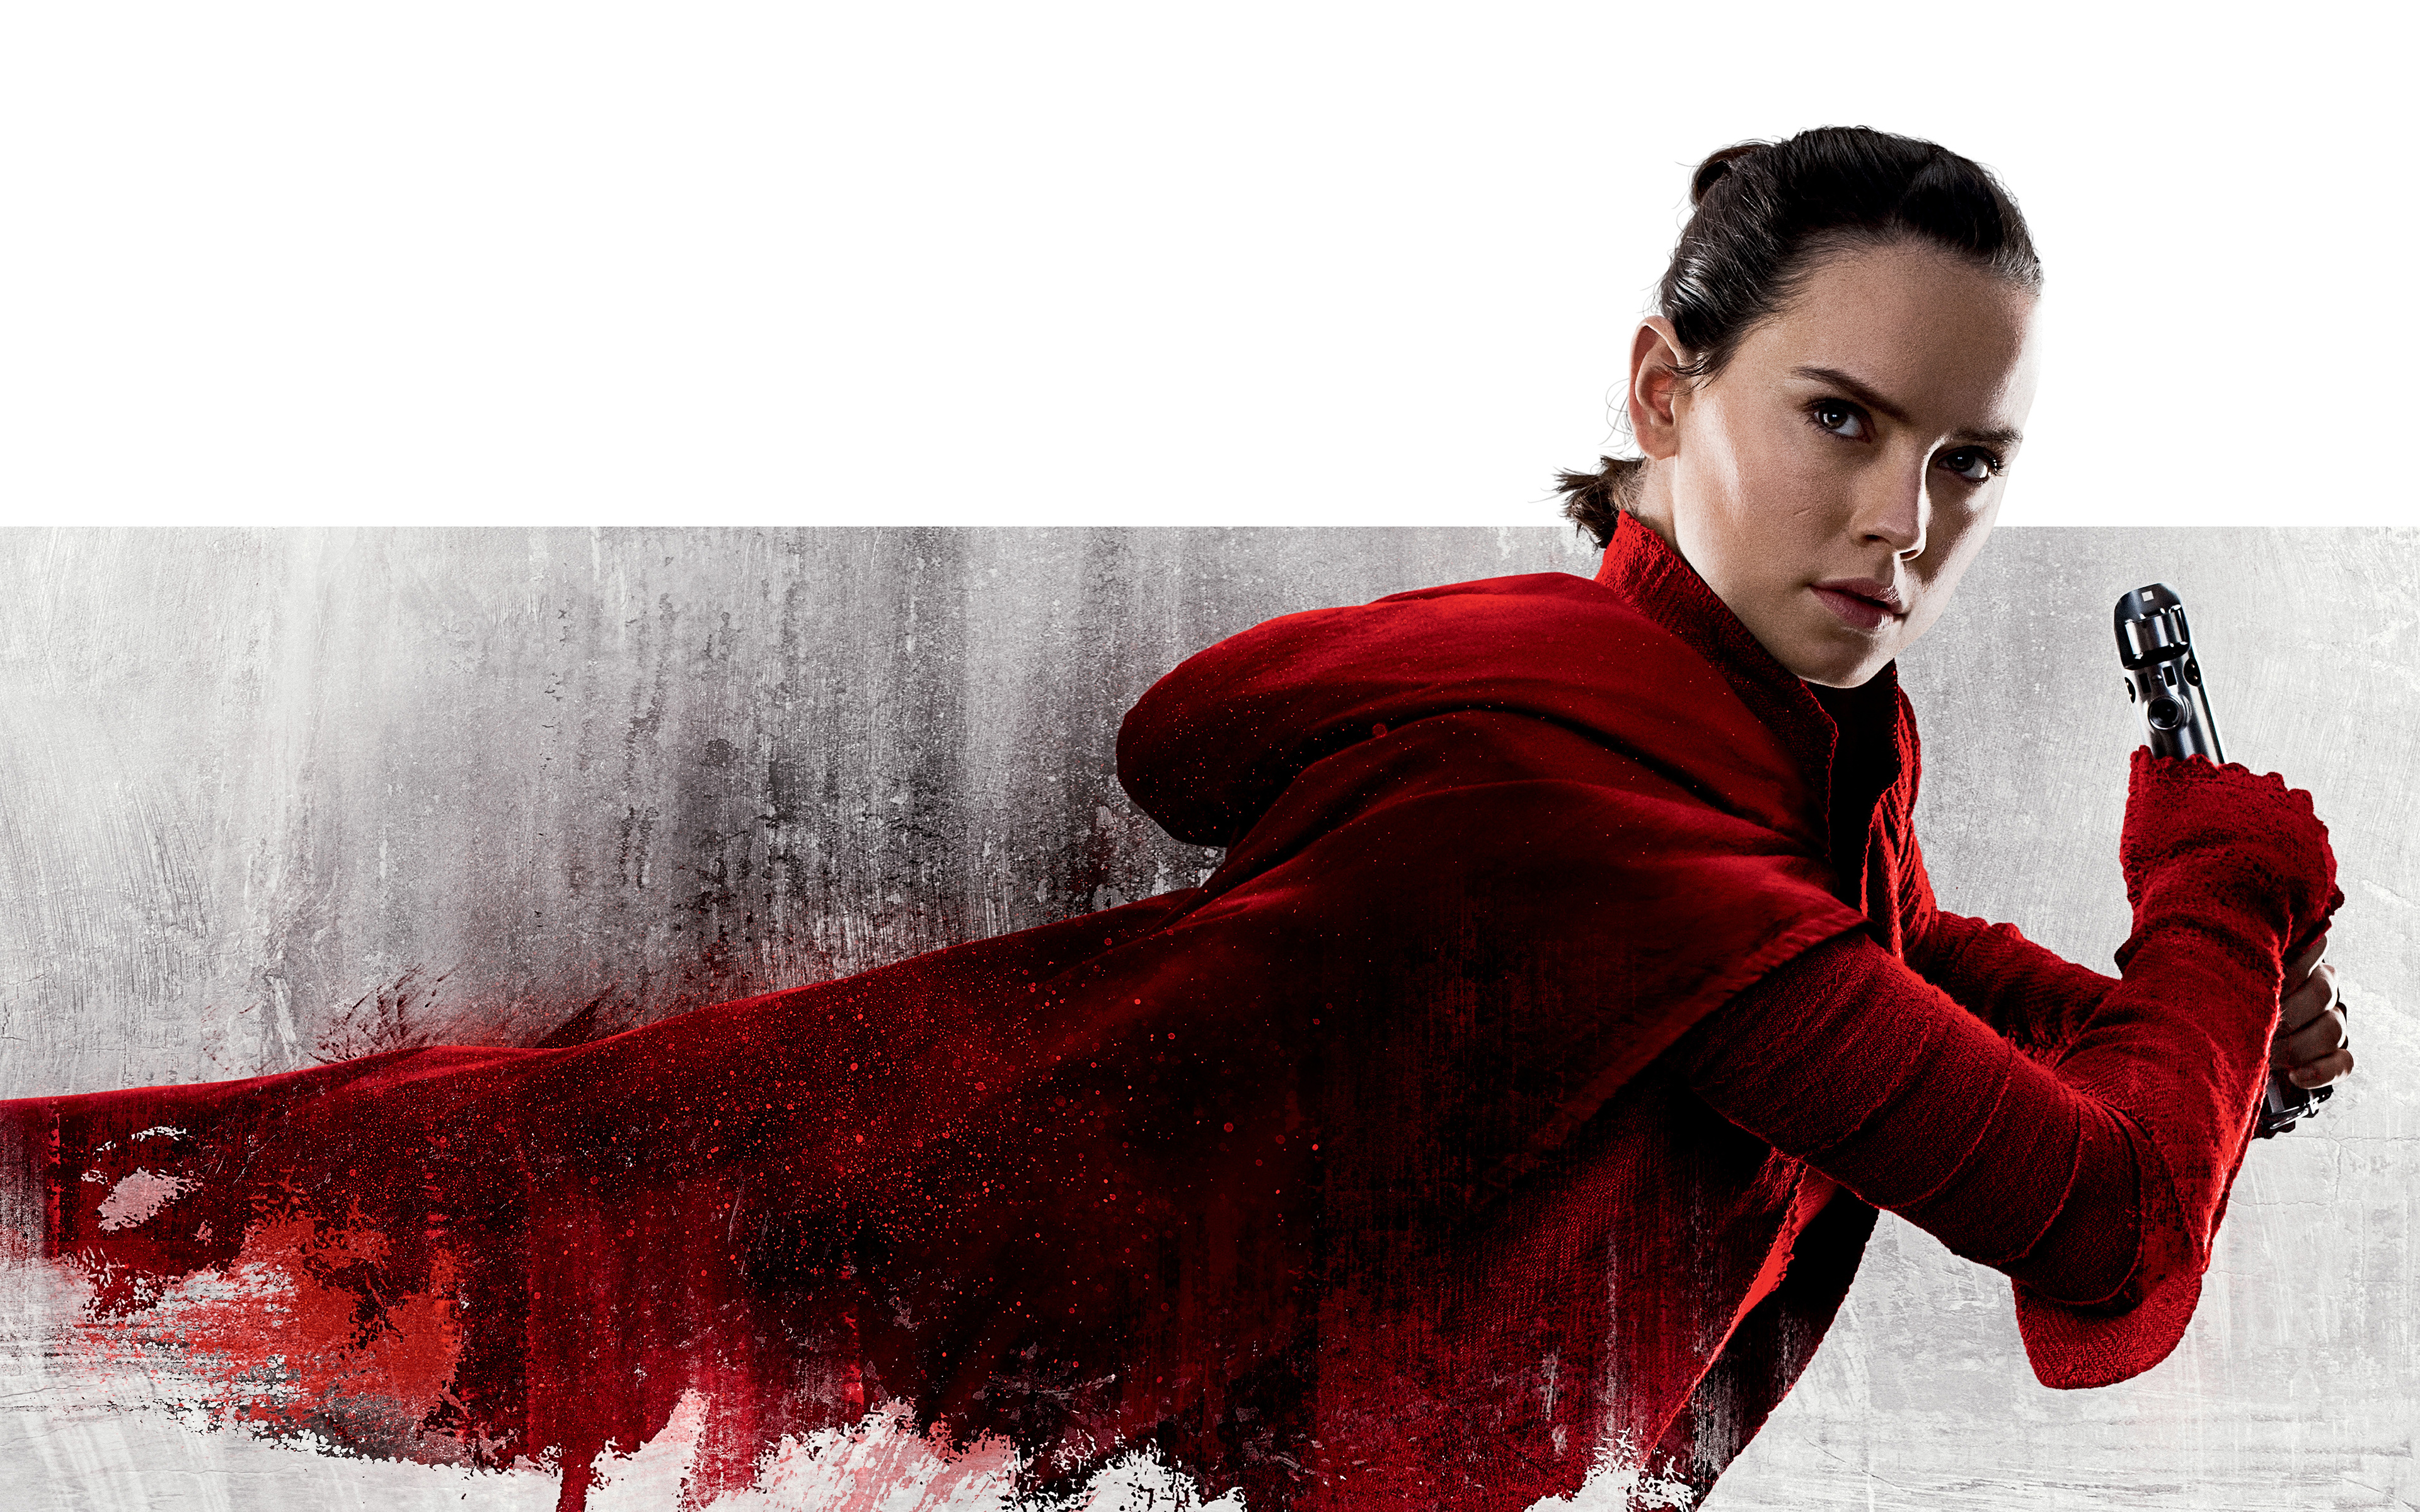 2560x1024 Daisy Ridley Star Wars Episode Viii 2560x1024 Resolution Wallpaper Hd Movies 4k Wallpapers Images Photos And Background